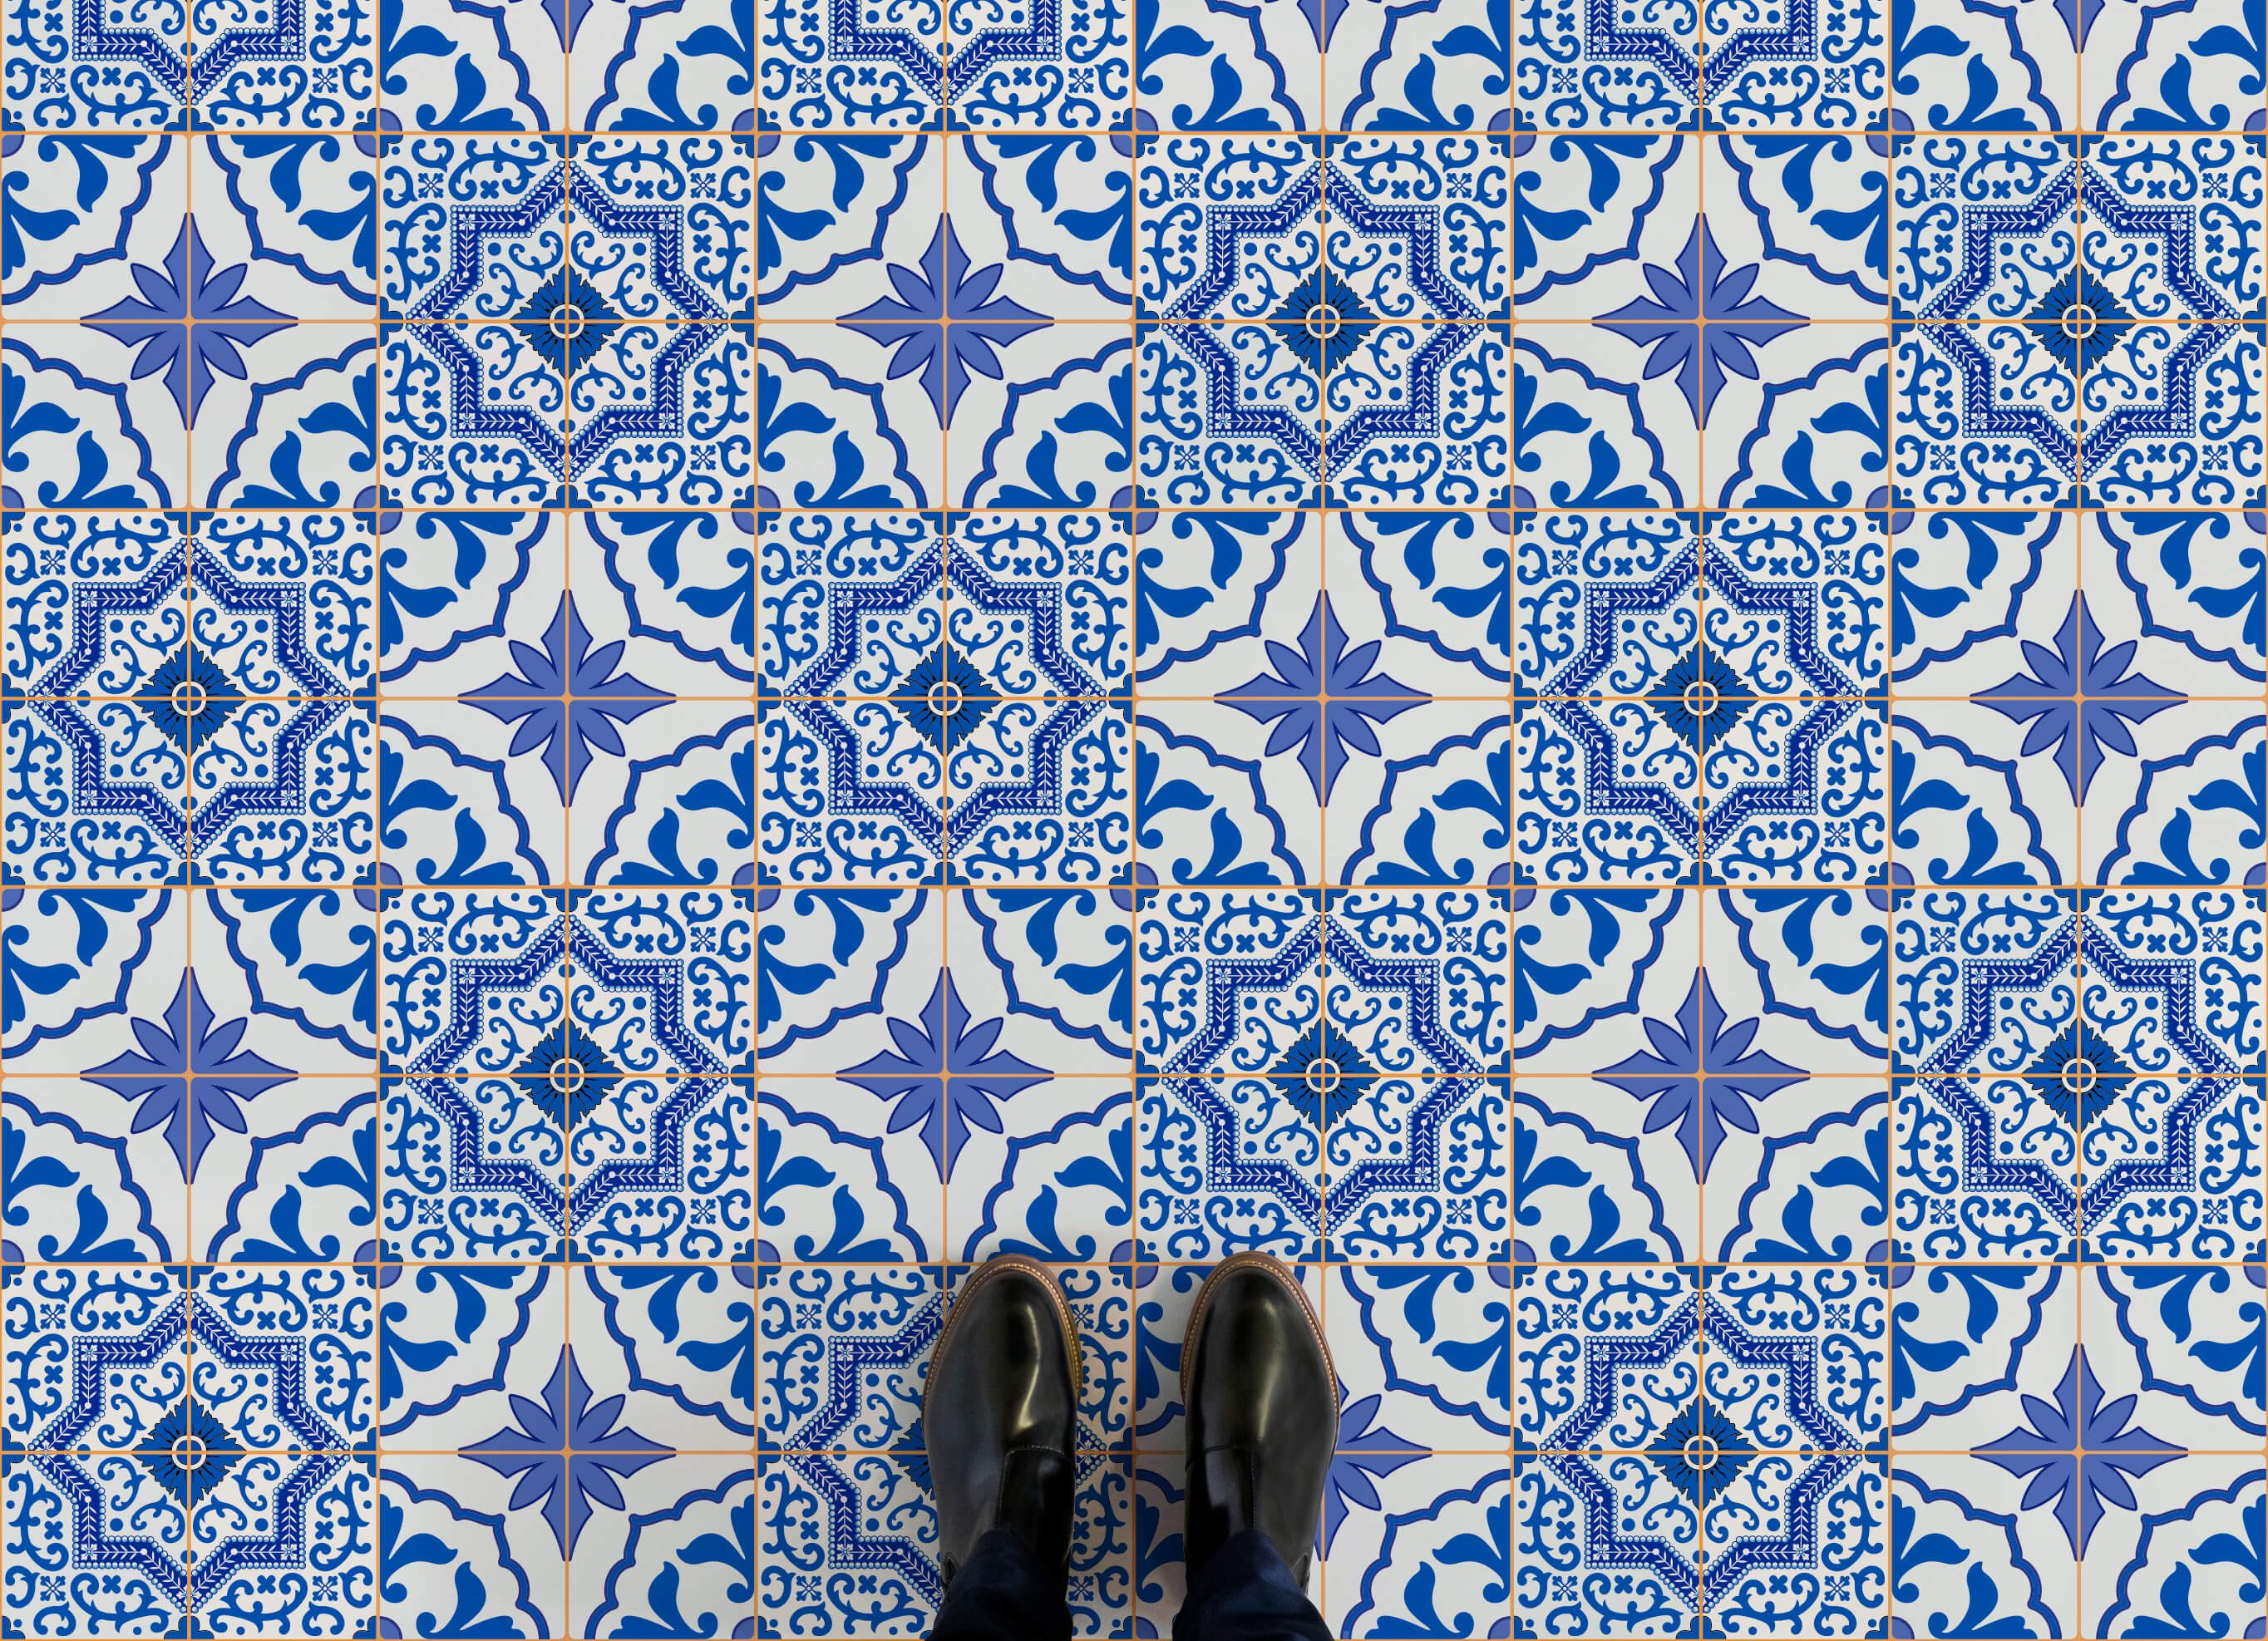 Cool Bathroom Vinyl traditional portuguese tile designs are recreated on to our